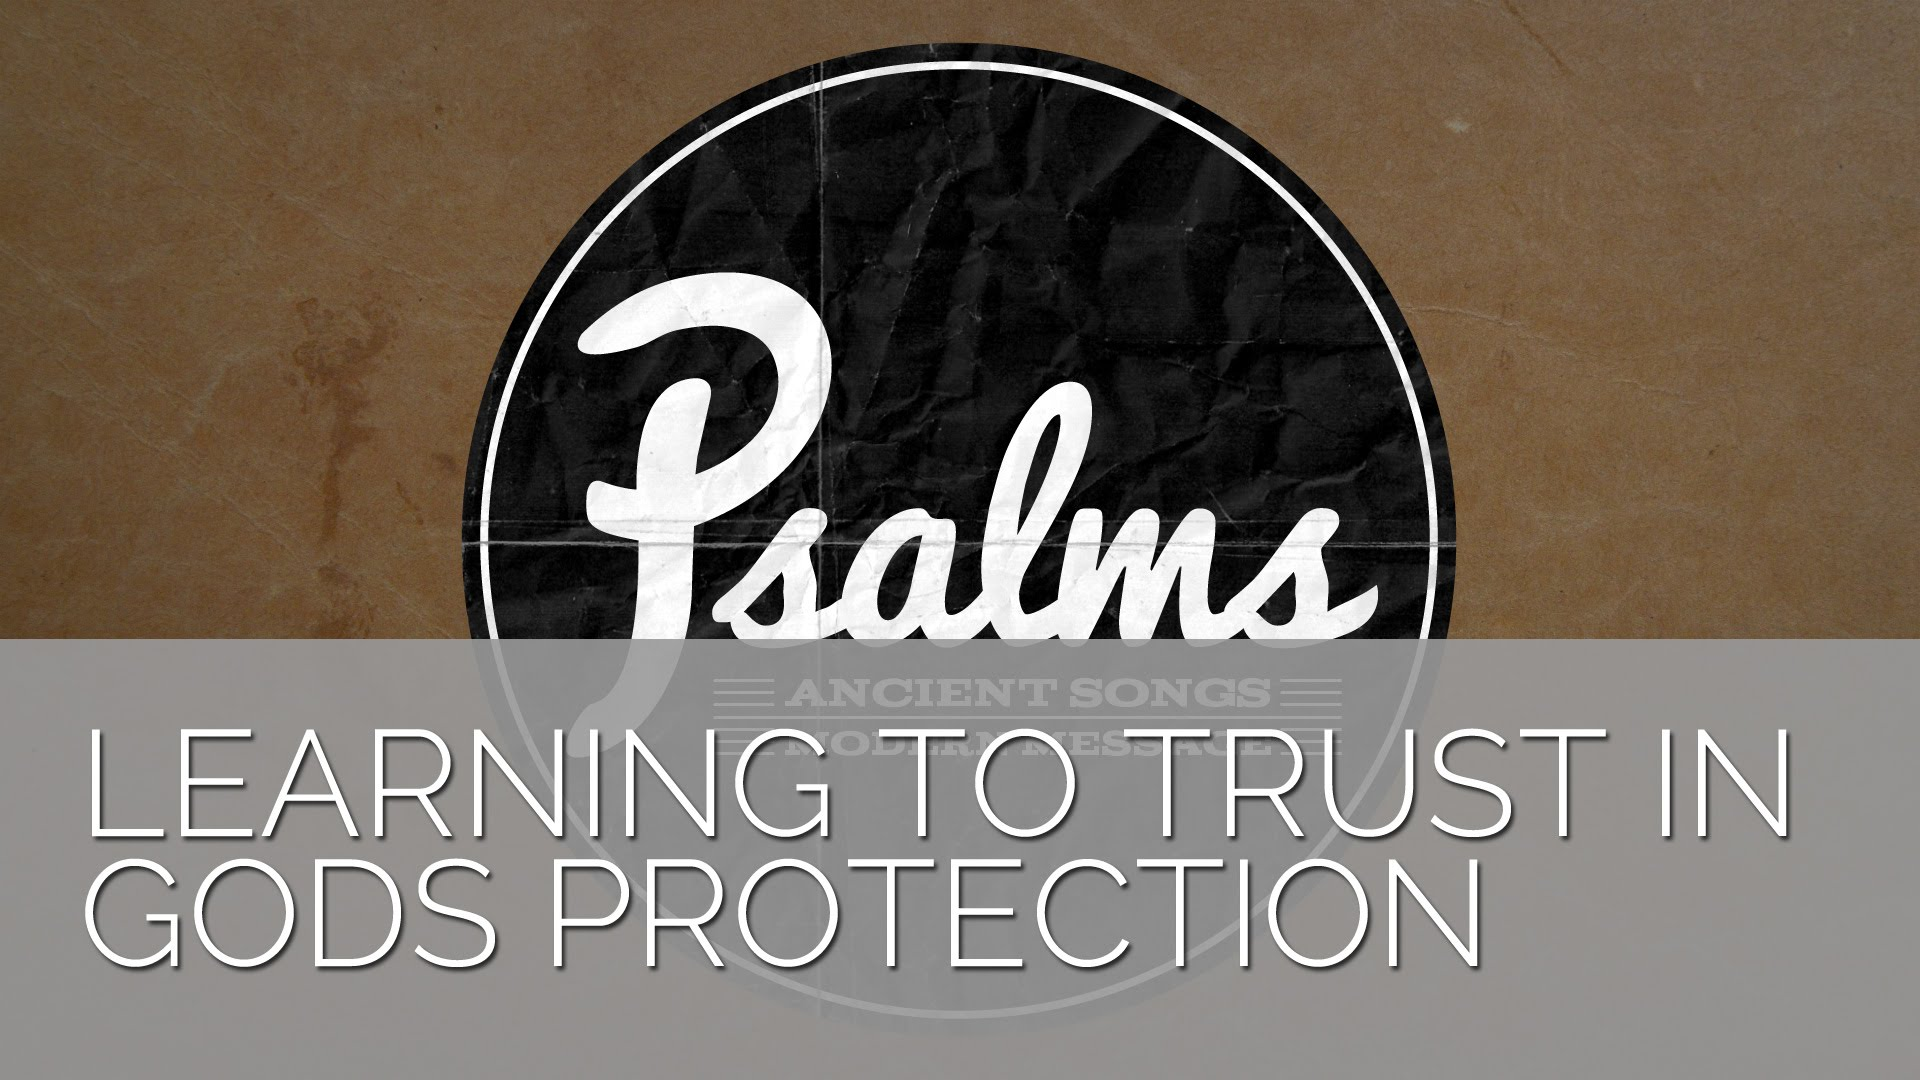 Psalm 121 – Learning to Trust in God's Protection